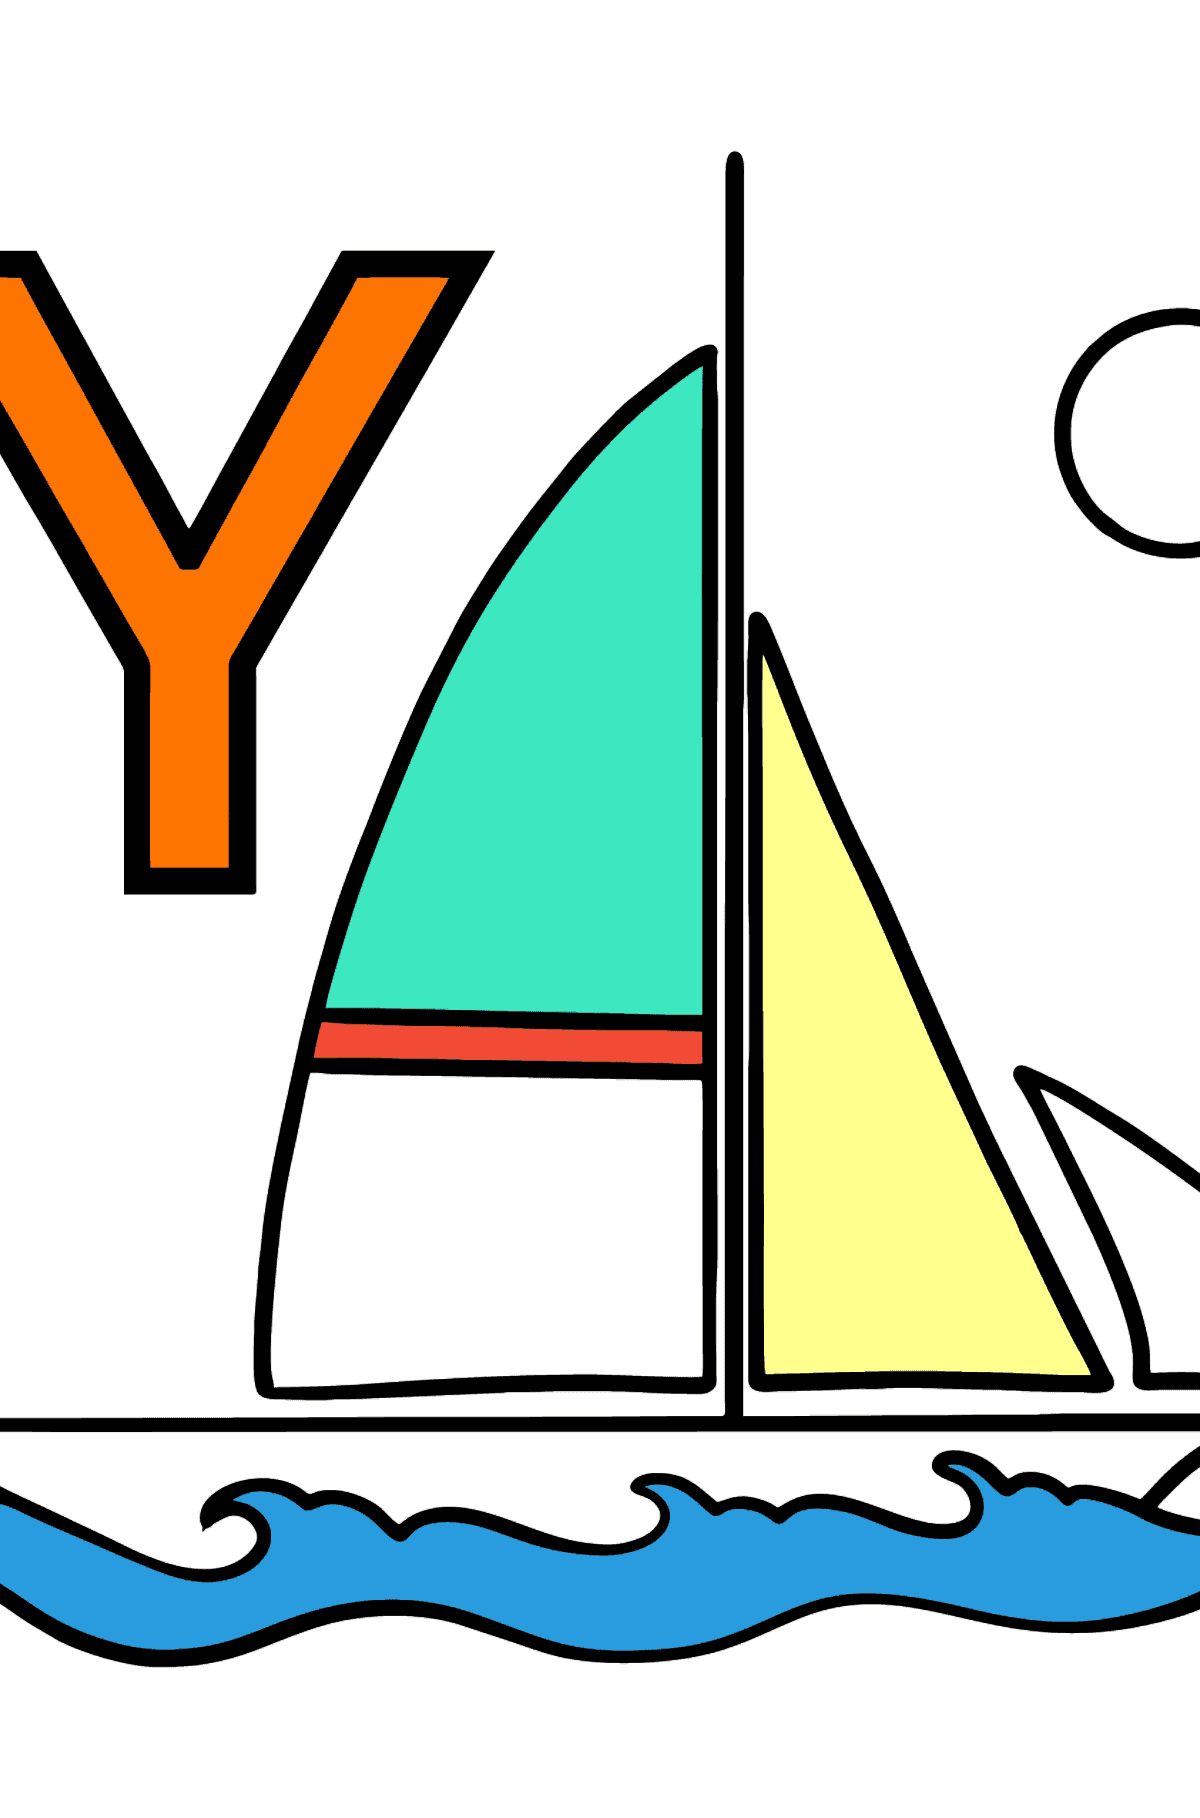 German Letter Y coloring pages - YACHT - Coloring Pages for Kids